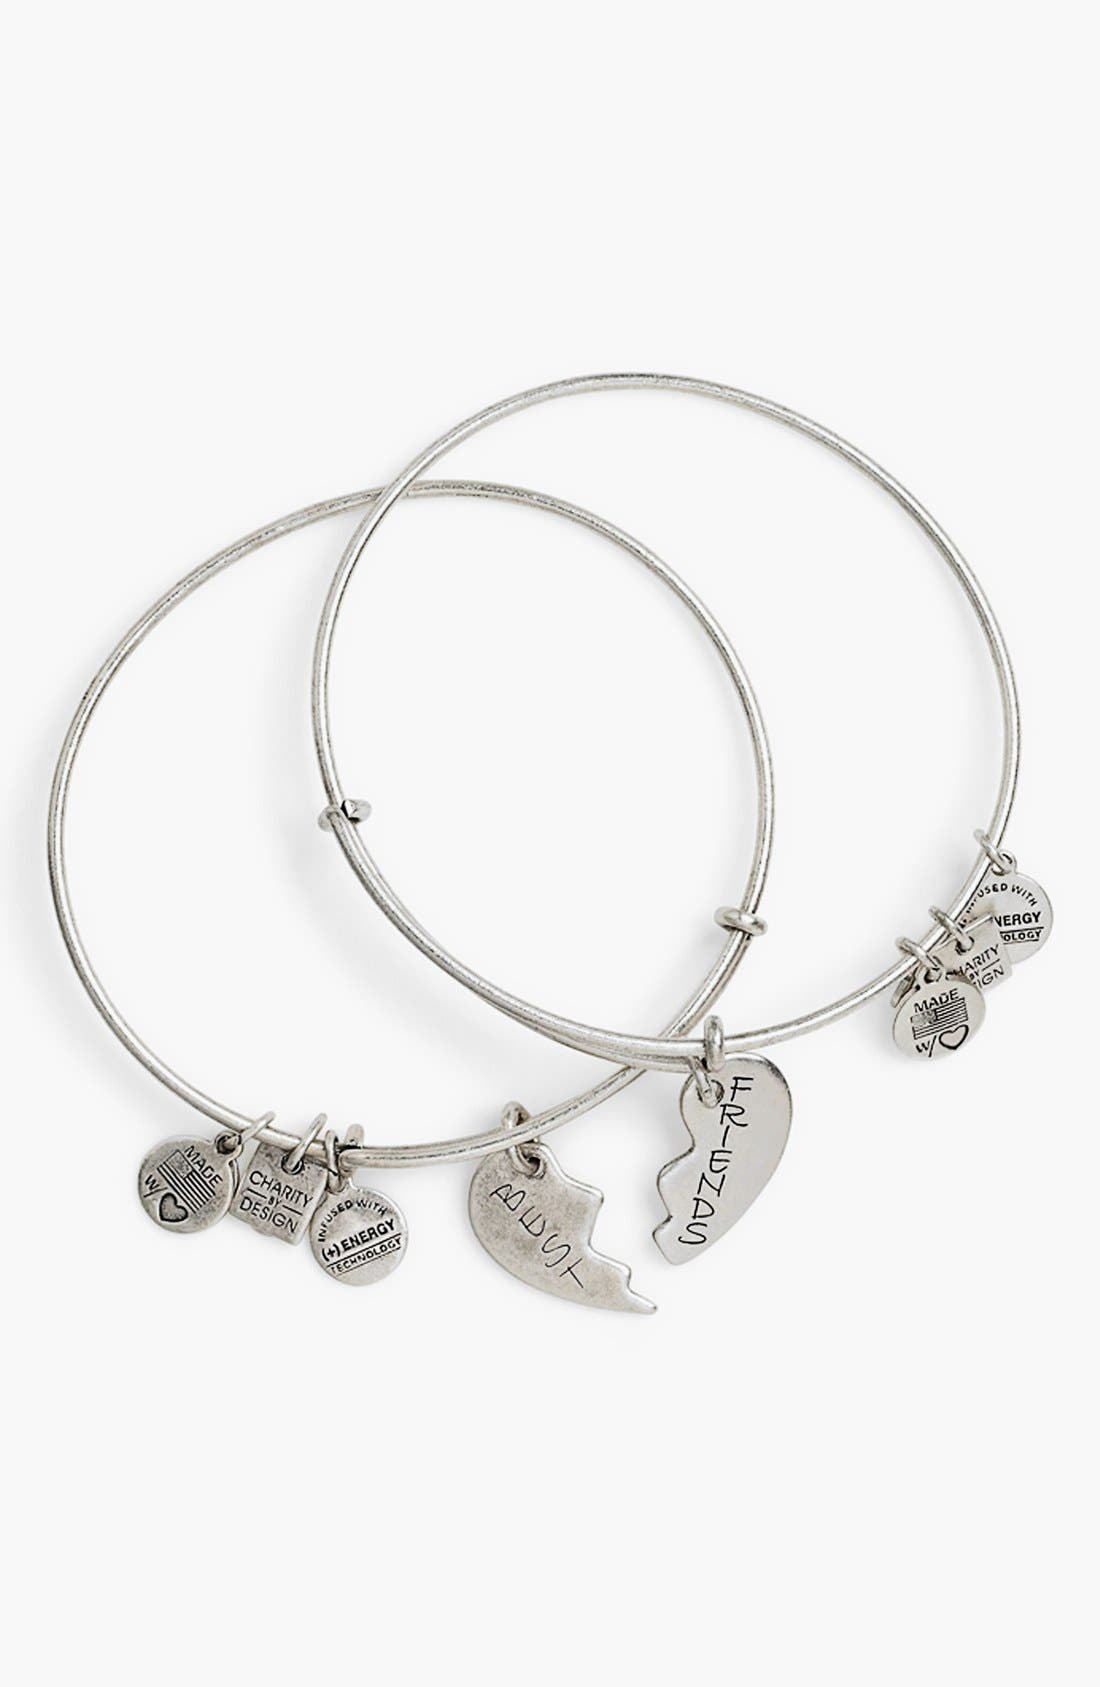 ALEX AND ANI Charity by Design - Best Friends Adjustable Wire Bangles